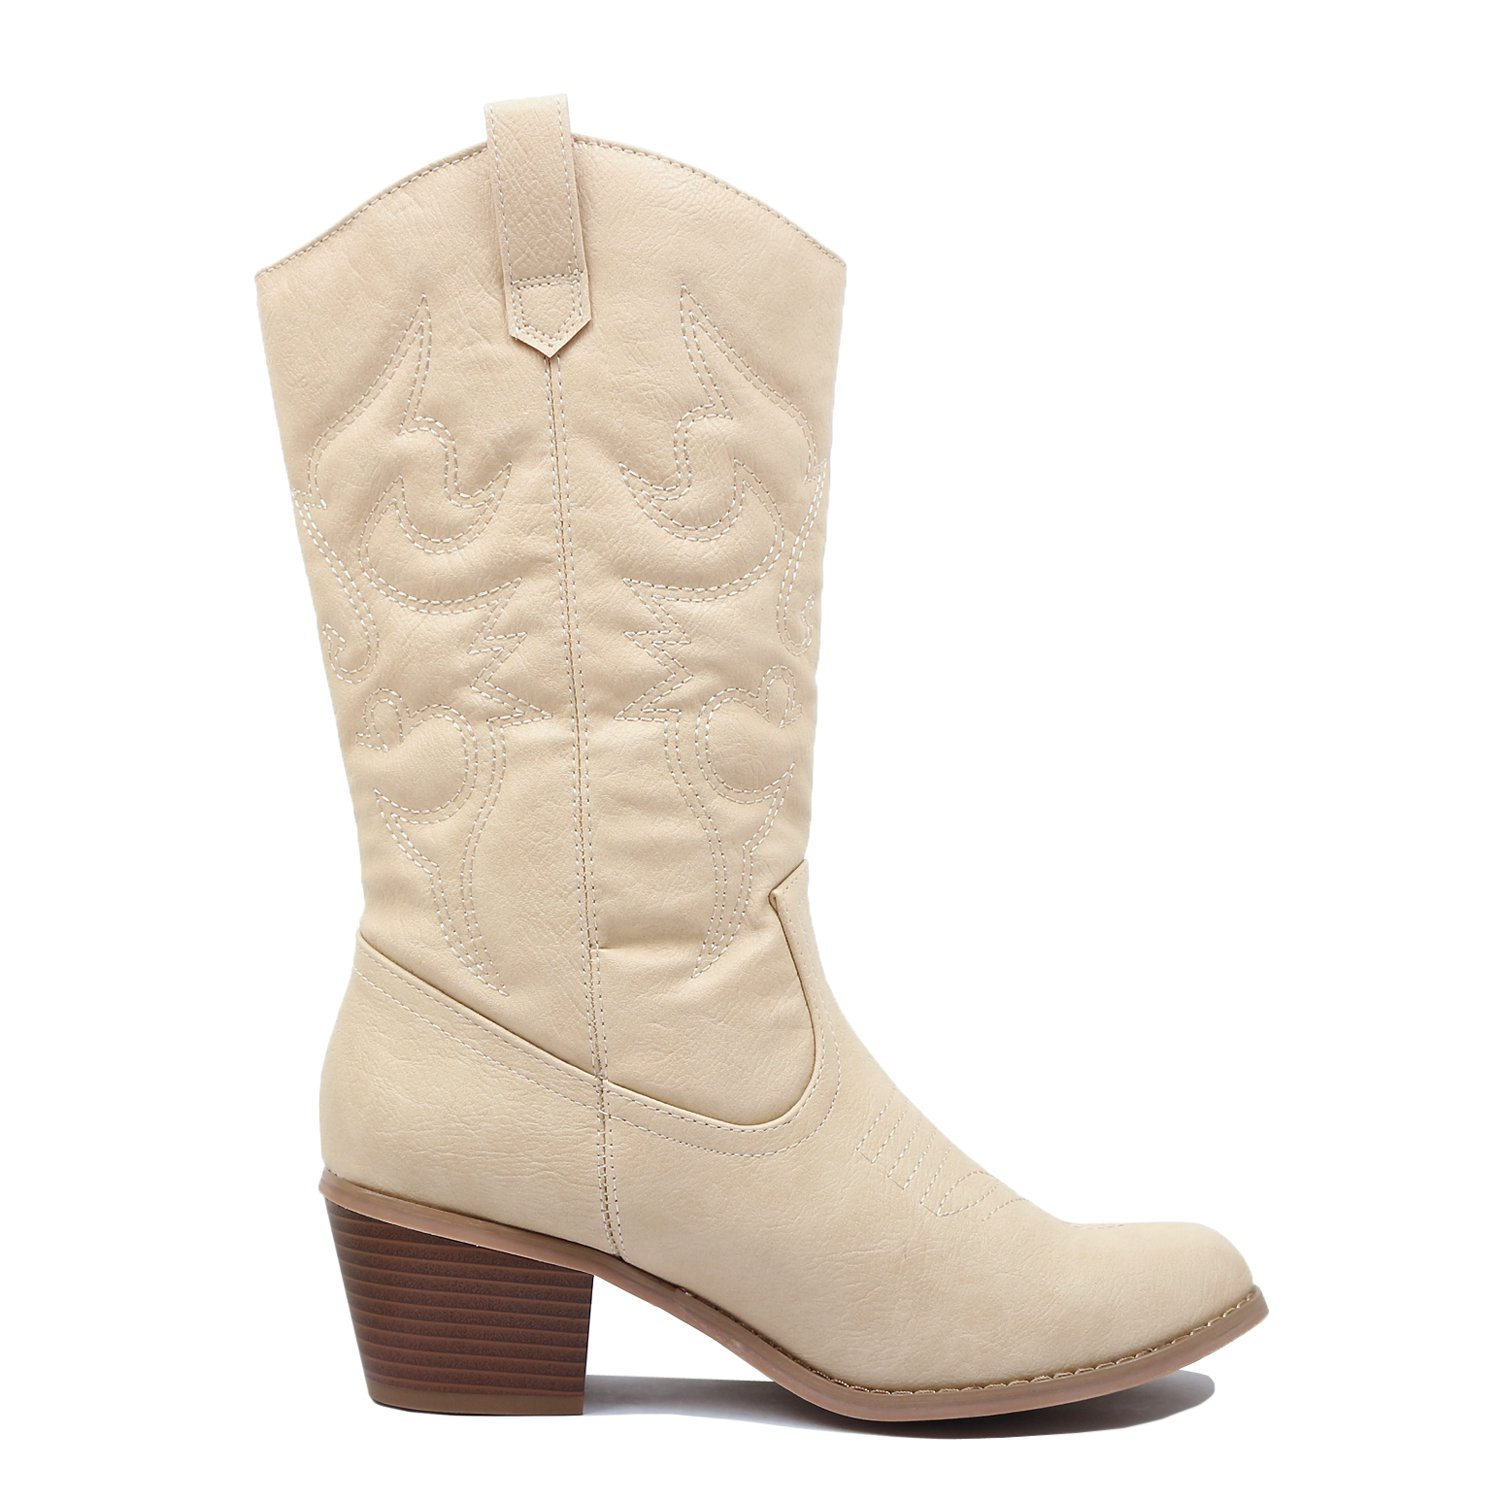 West Blvd Miami Cowboy Western Boots Boots, Beige Pu, 10 (B) M US by West Blvd (Image #4)